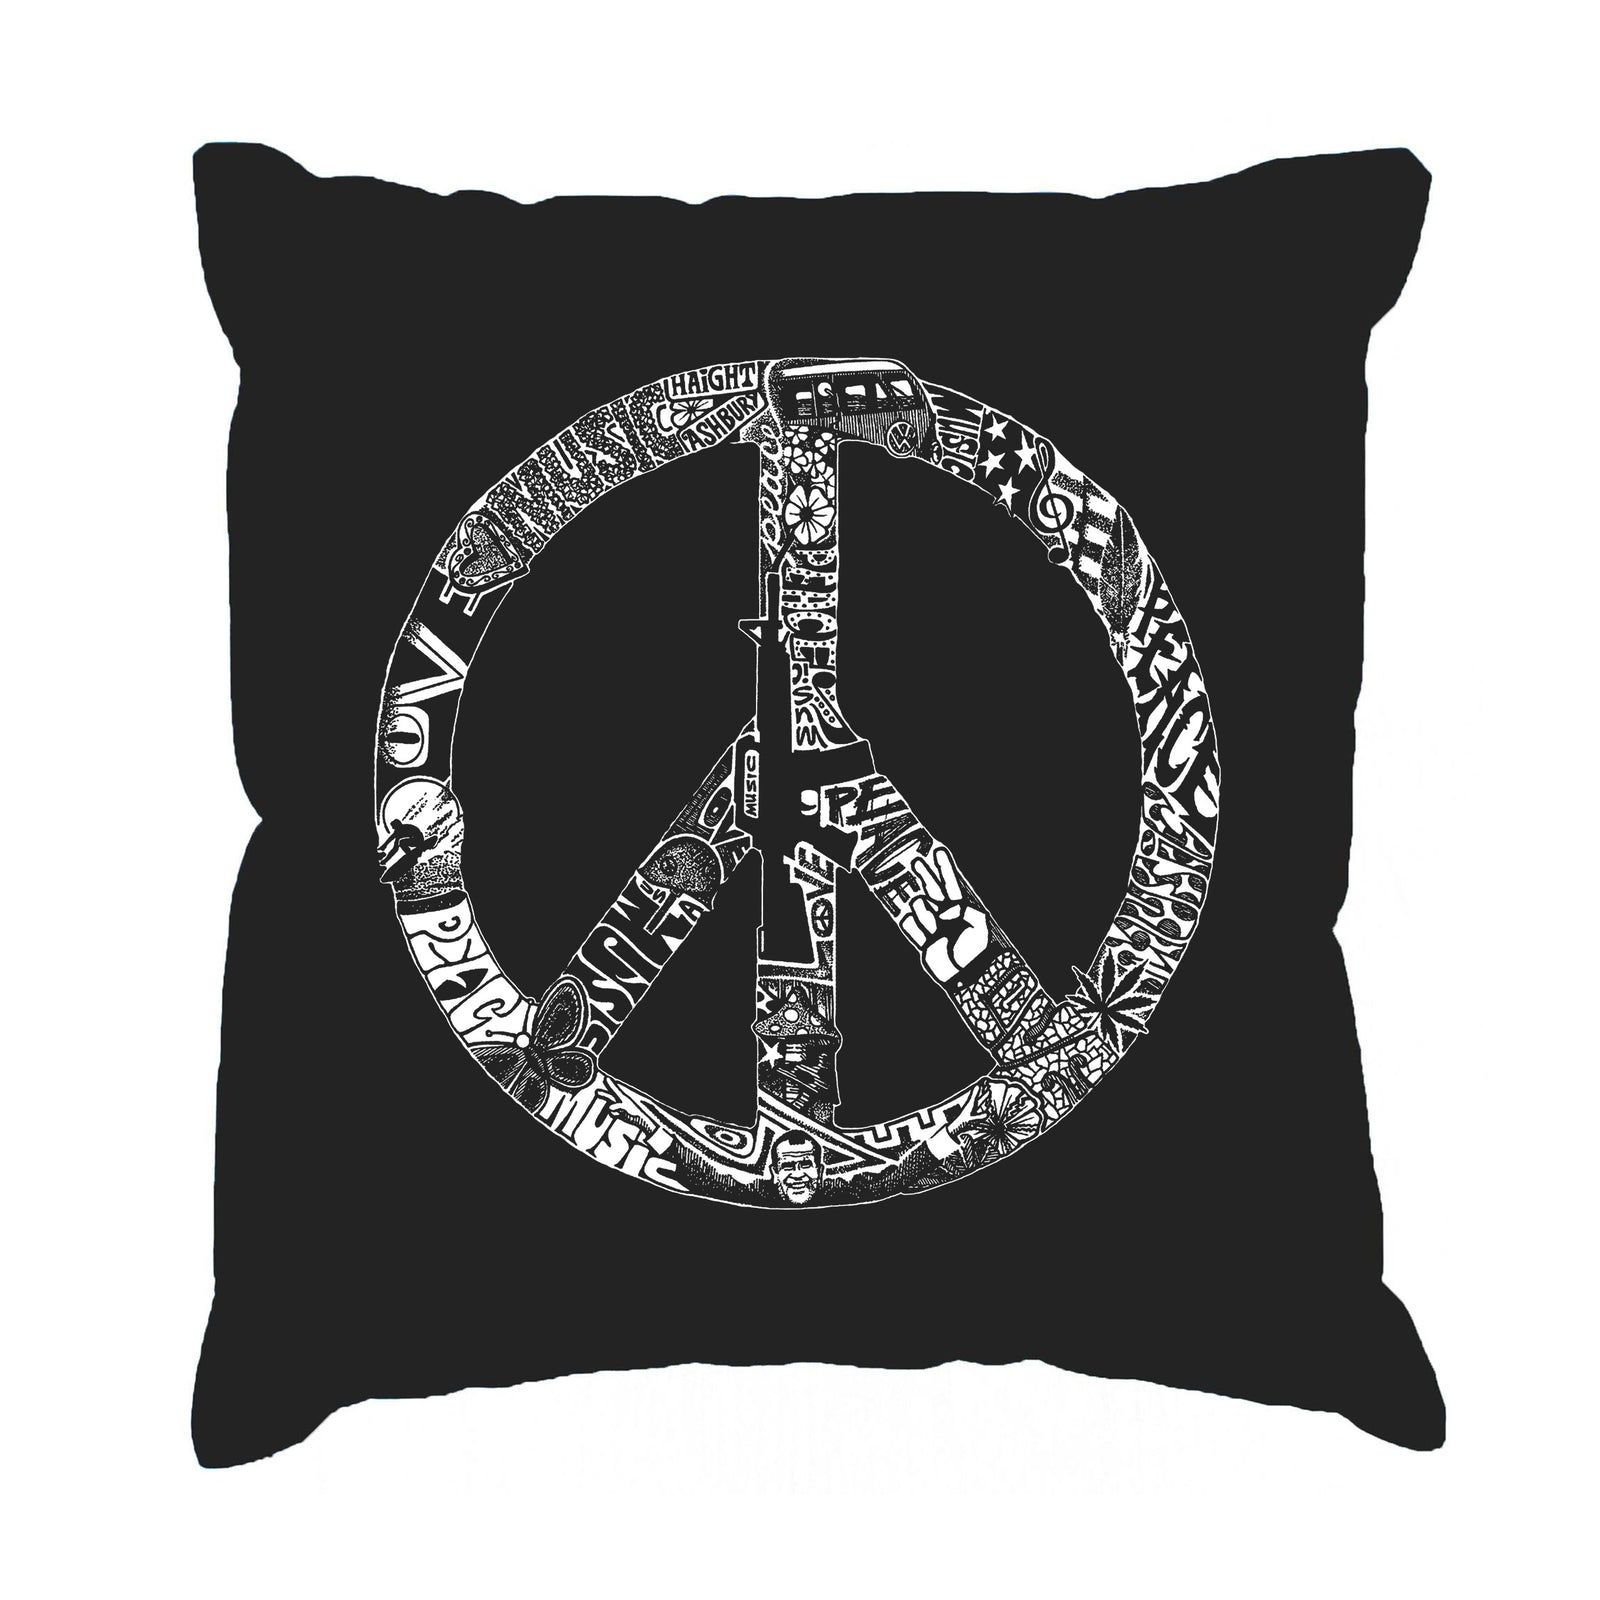 Throw Pillow Cover - PEACE, LOVE, & MUSIC